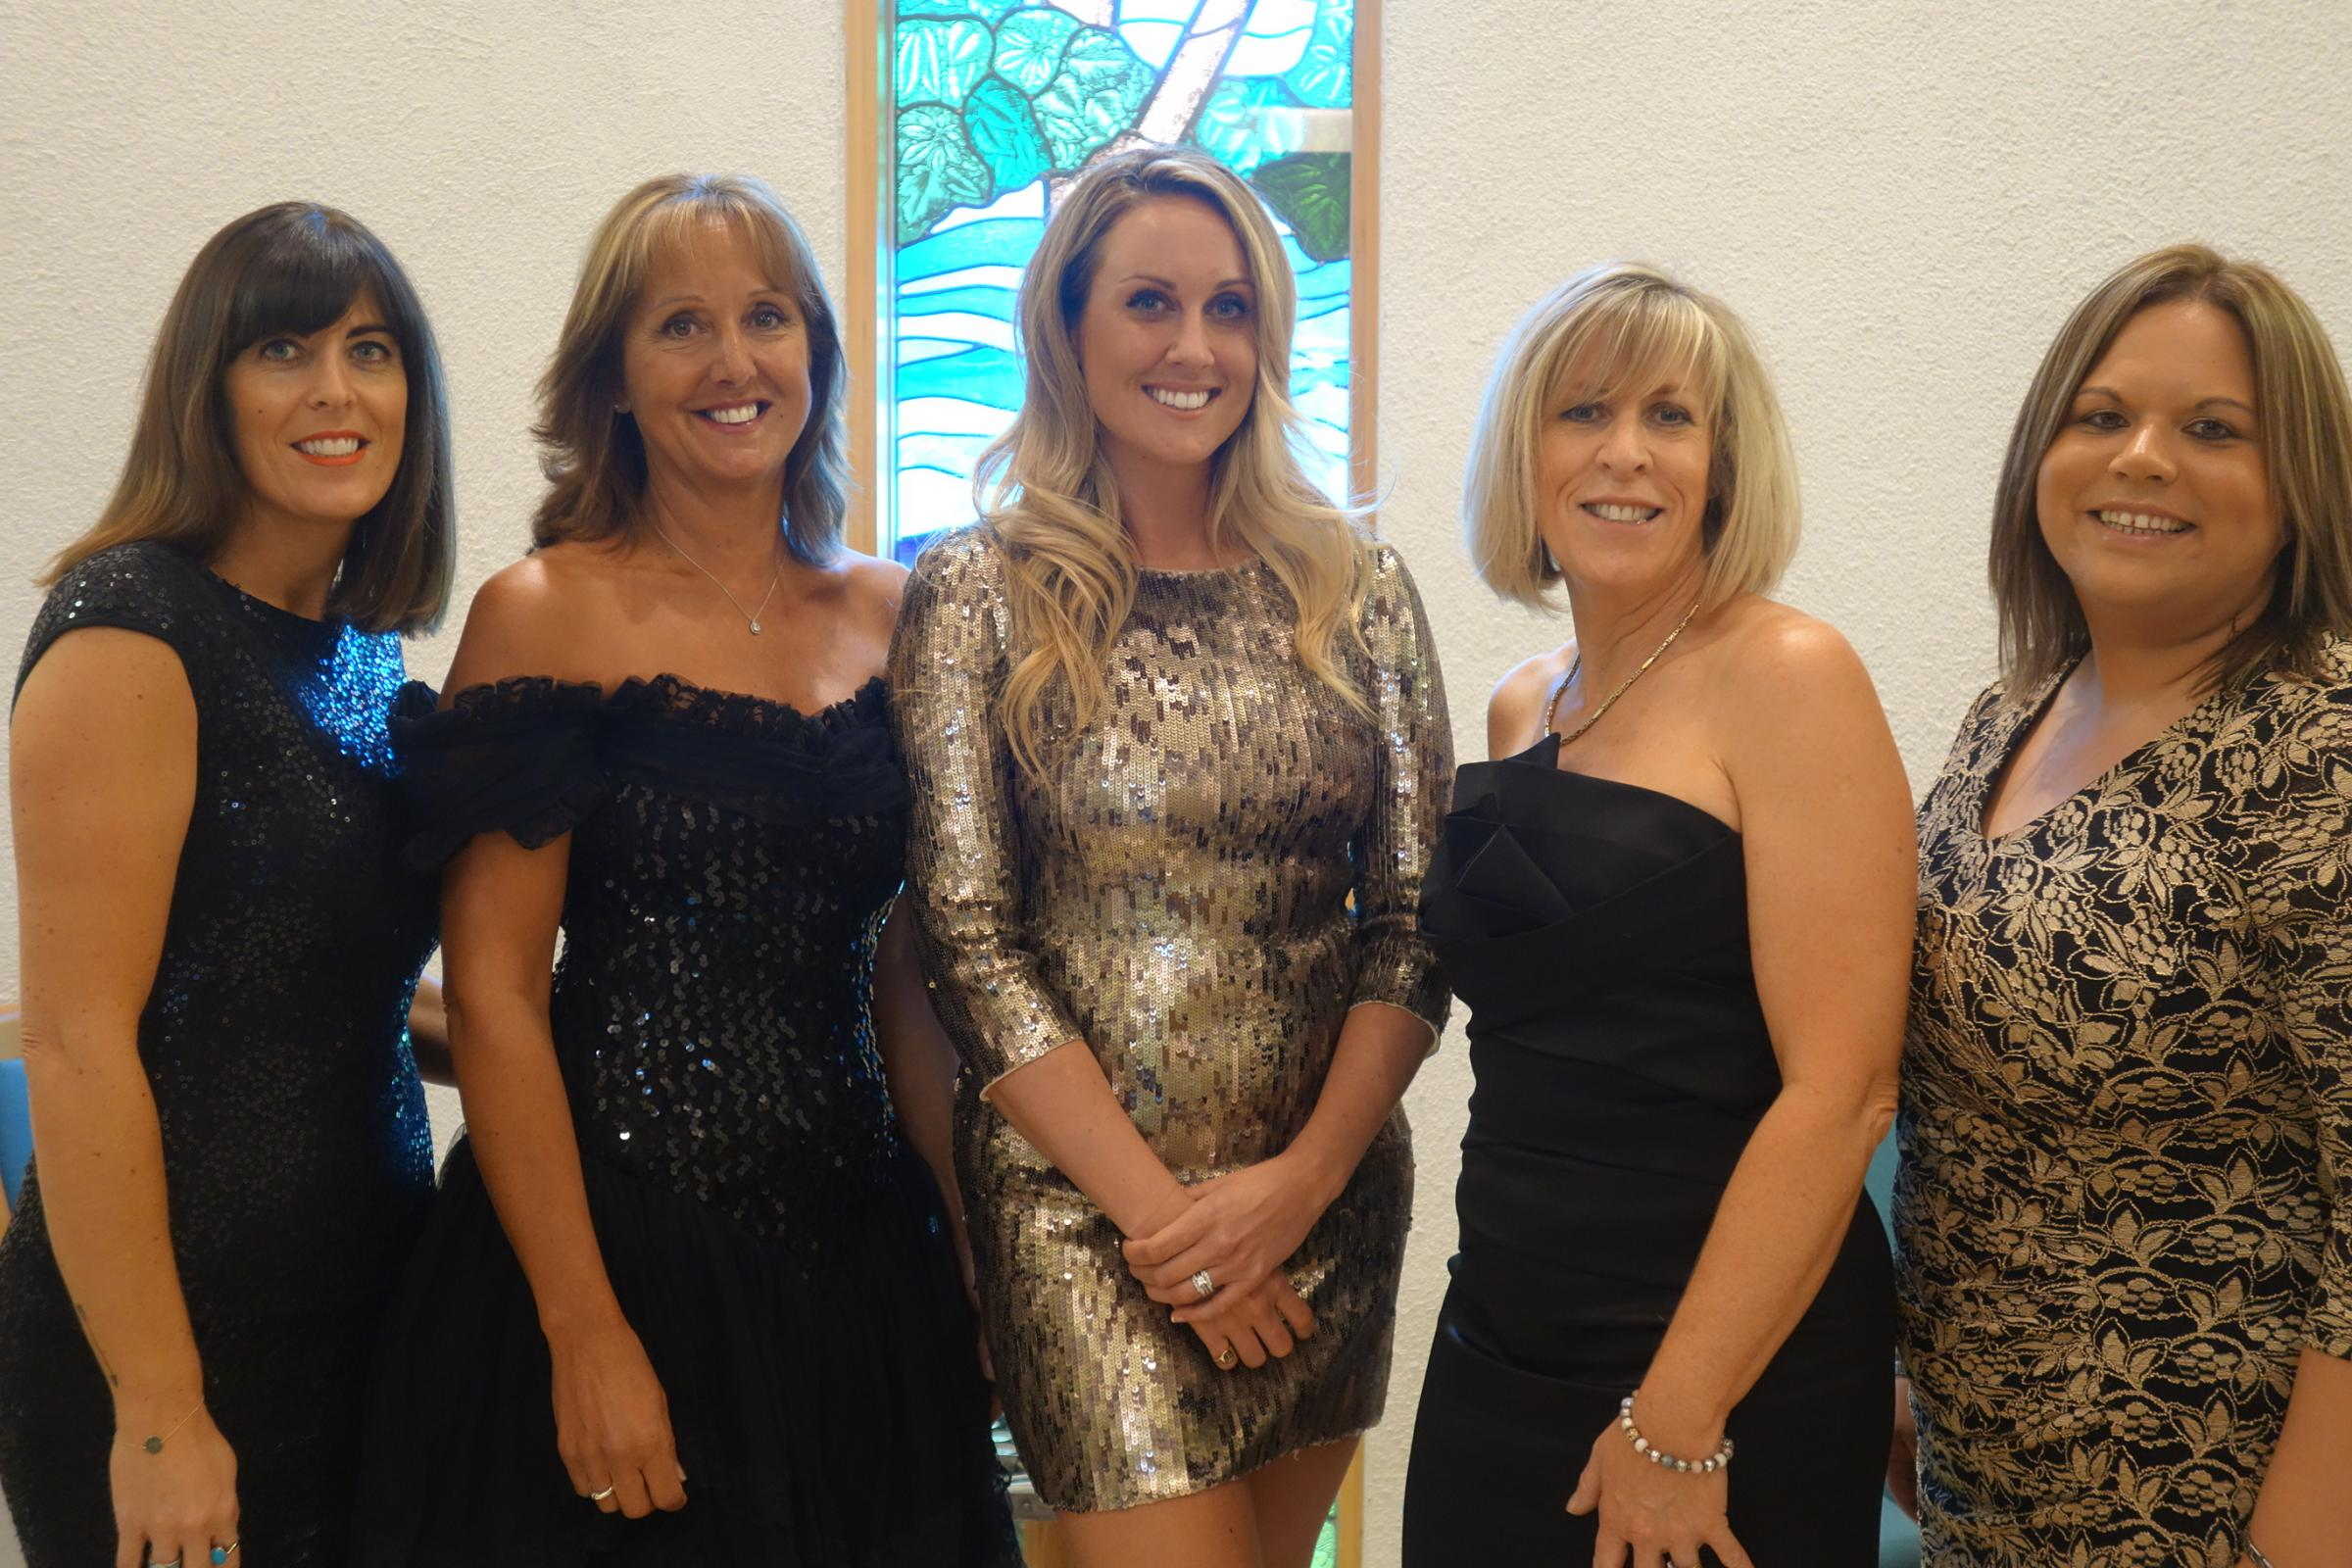 Glamorous Snowdrop Ball to raise cash for Worcester's St Richard's Hospice